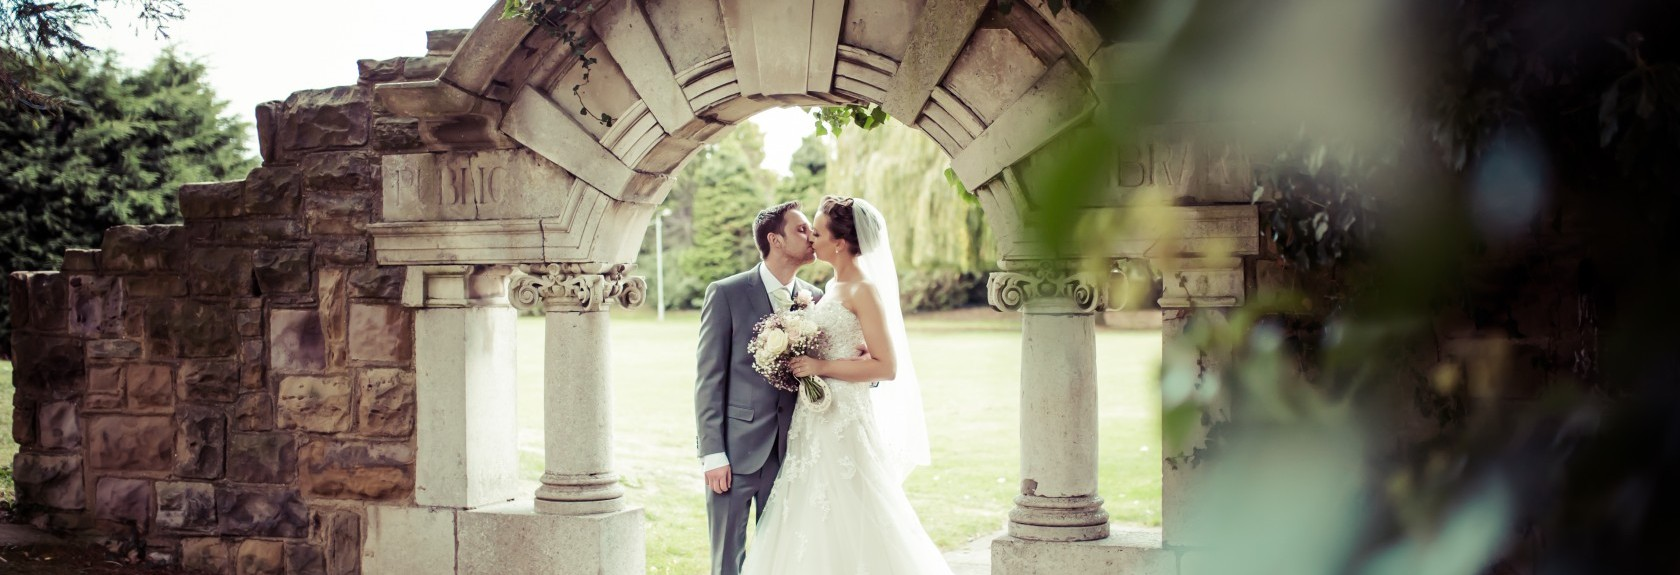 Bride and groom, wedding kiss